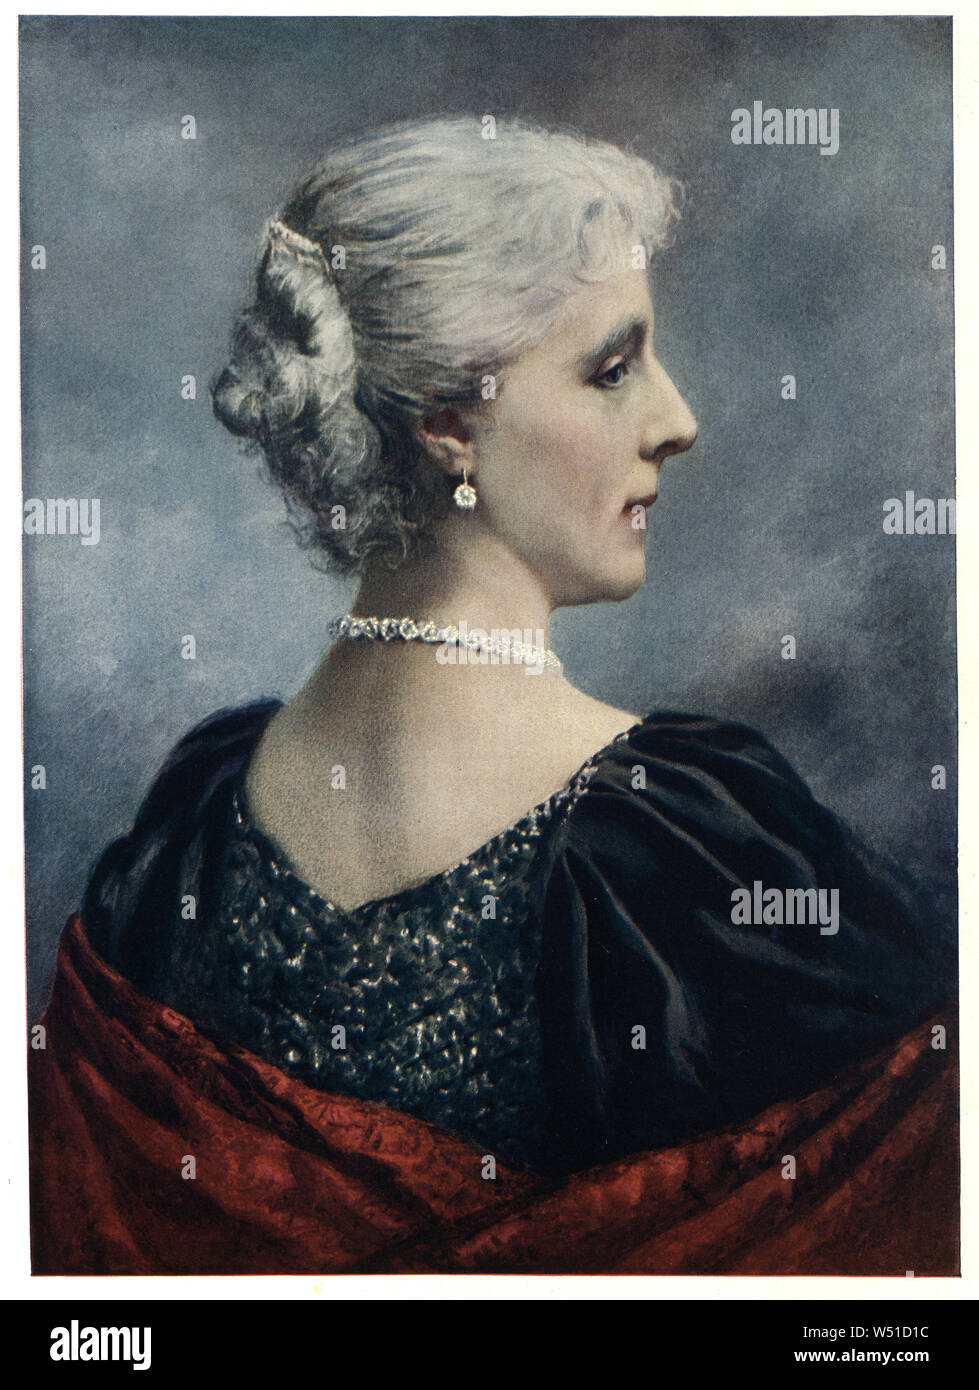 Marie Henriette of Austria (Marie Henriette Anne; 23 August 1836 – 19 September 1902) was Queen of the Belgians as the wife of King Leopold II. Stock Photo